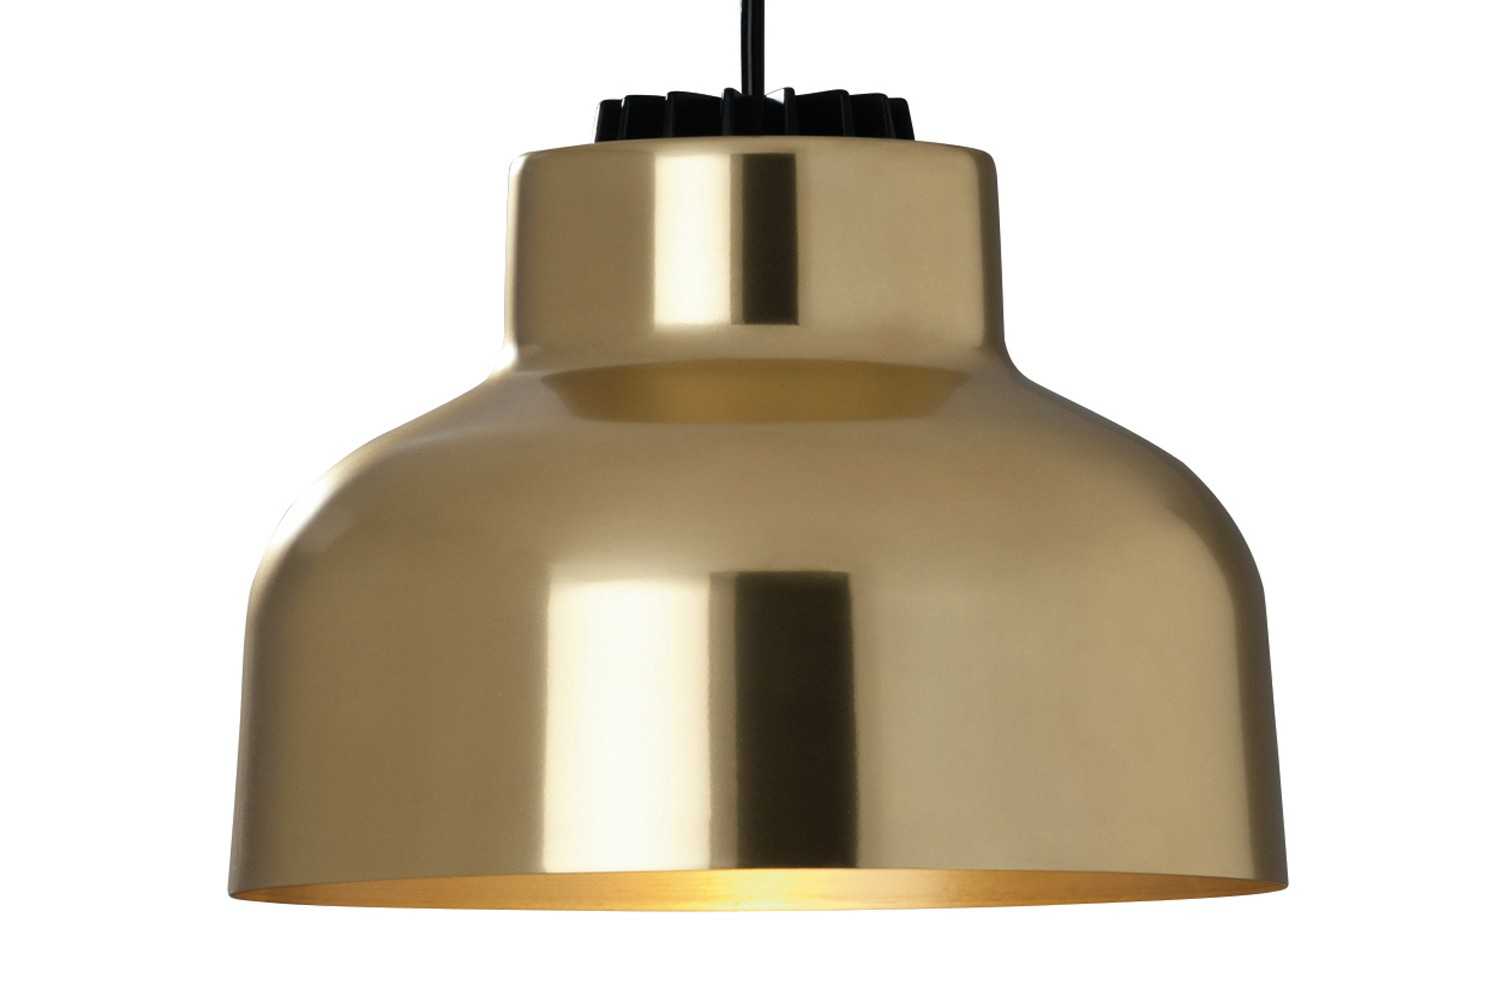 M64 Pendant Light White - Not Dimmable, Brass, 300